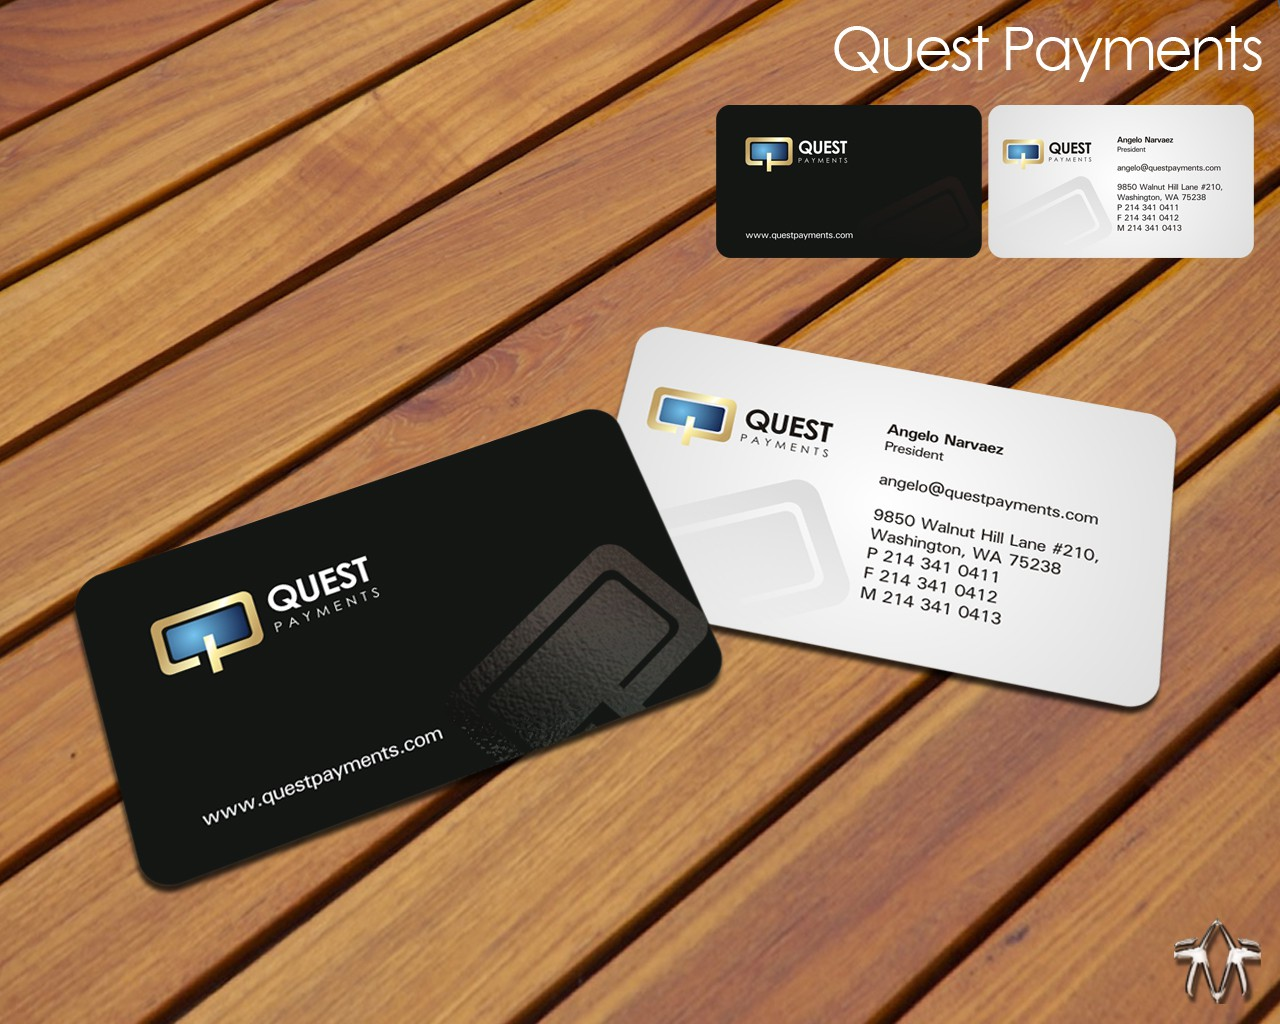 *****Quest Payments looking for a Modern Professional Identity*****